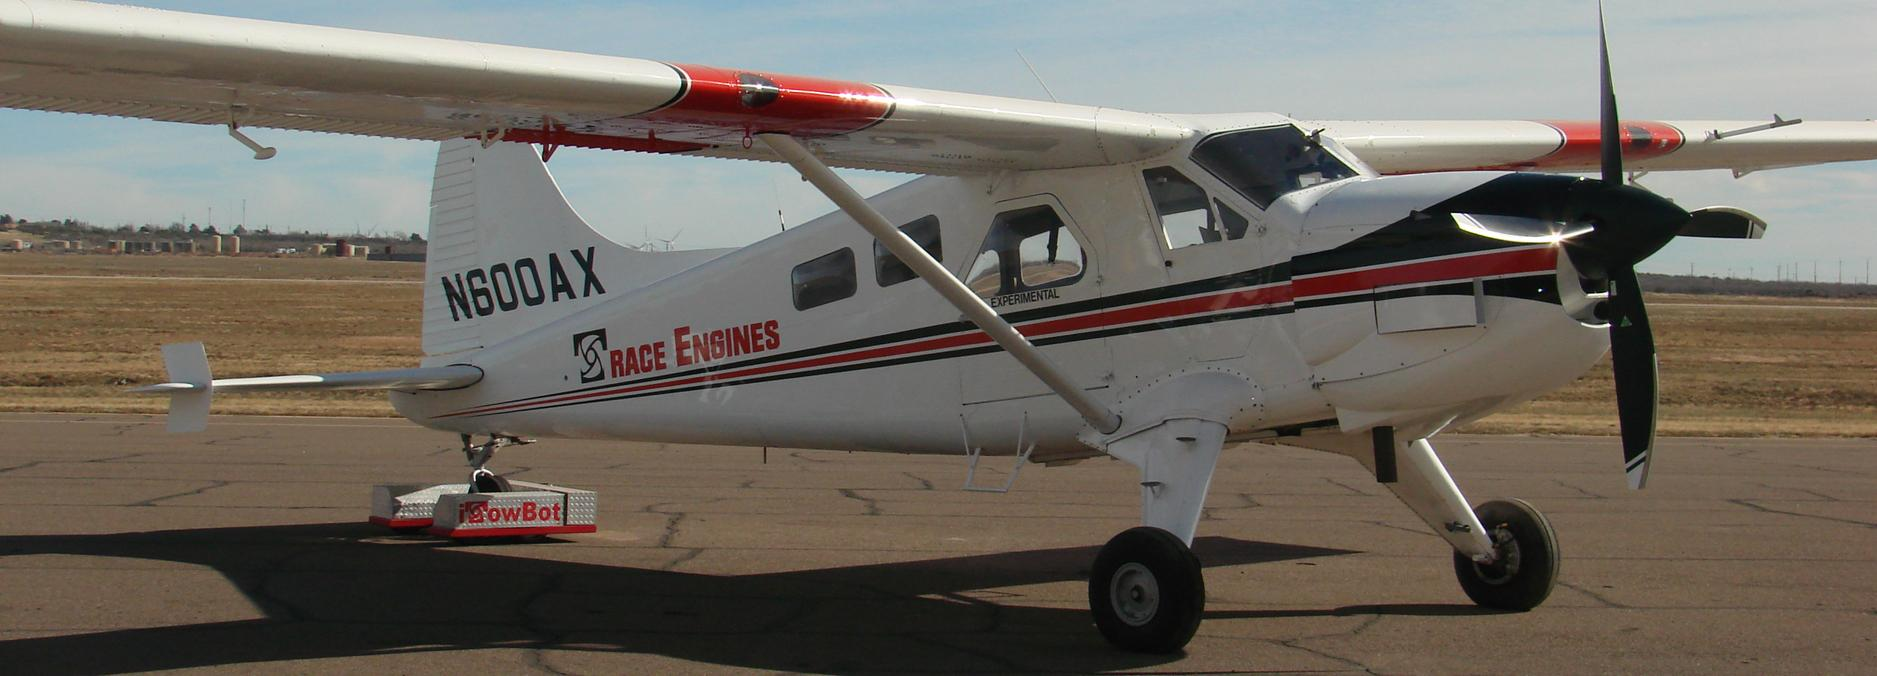 STC Certification on Trace Engines DHC-2 MK-I Engine Conversion